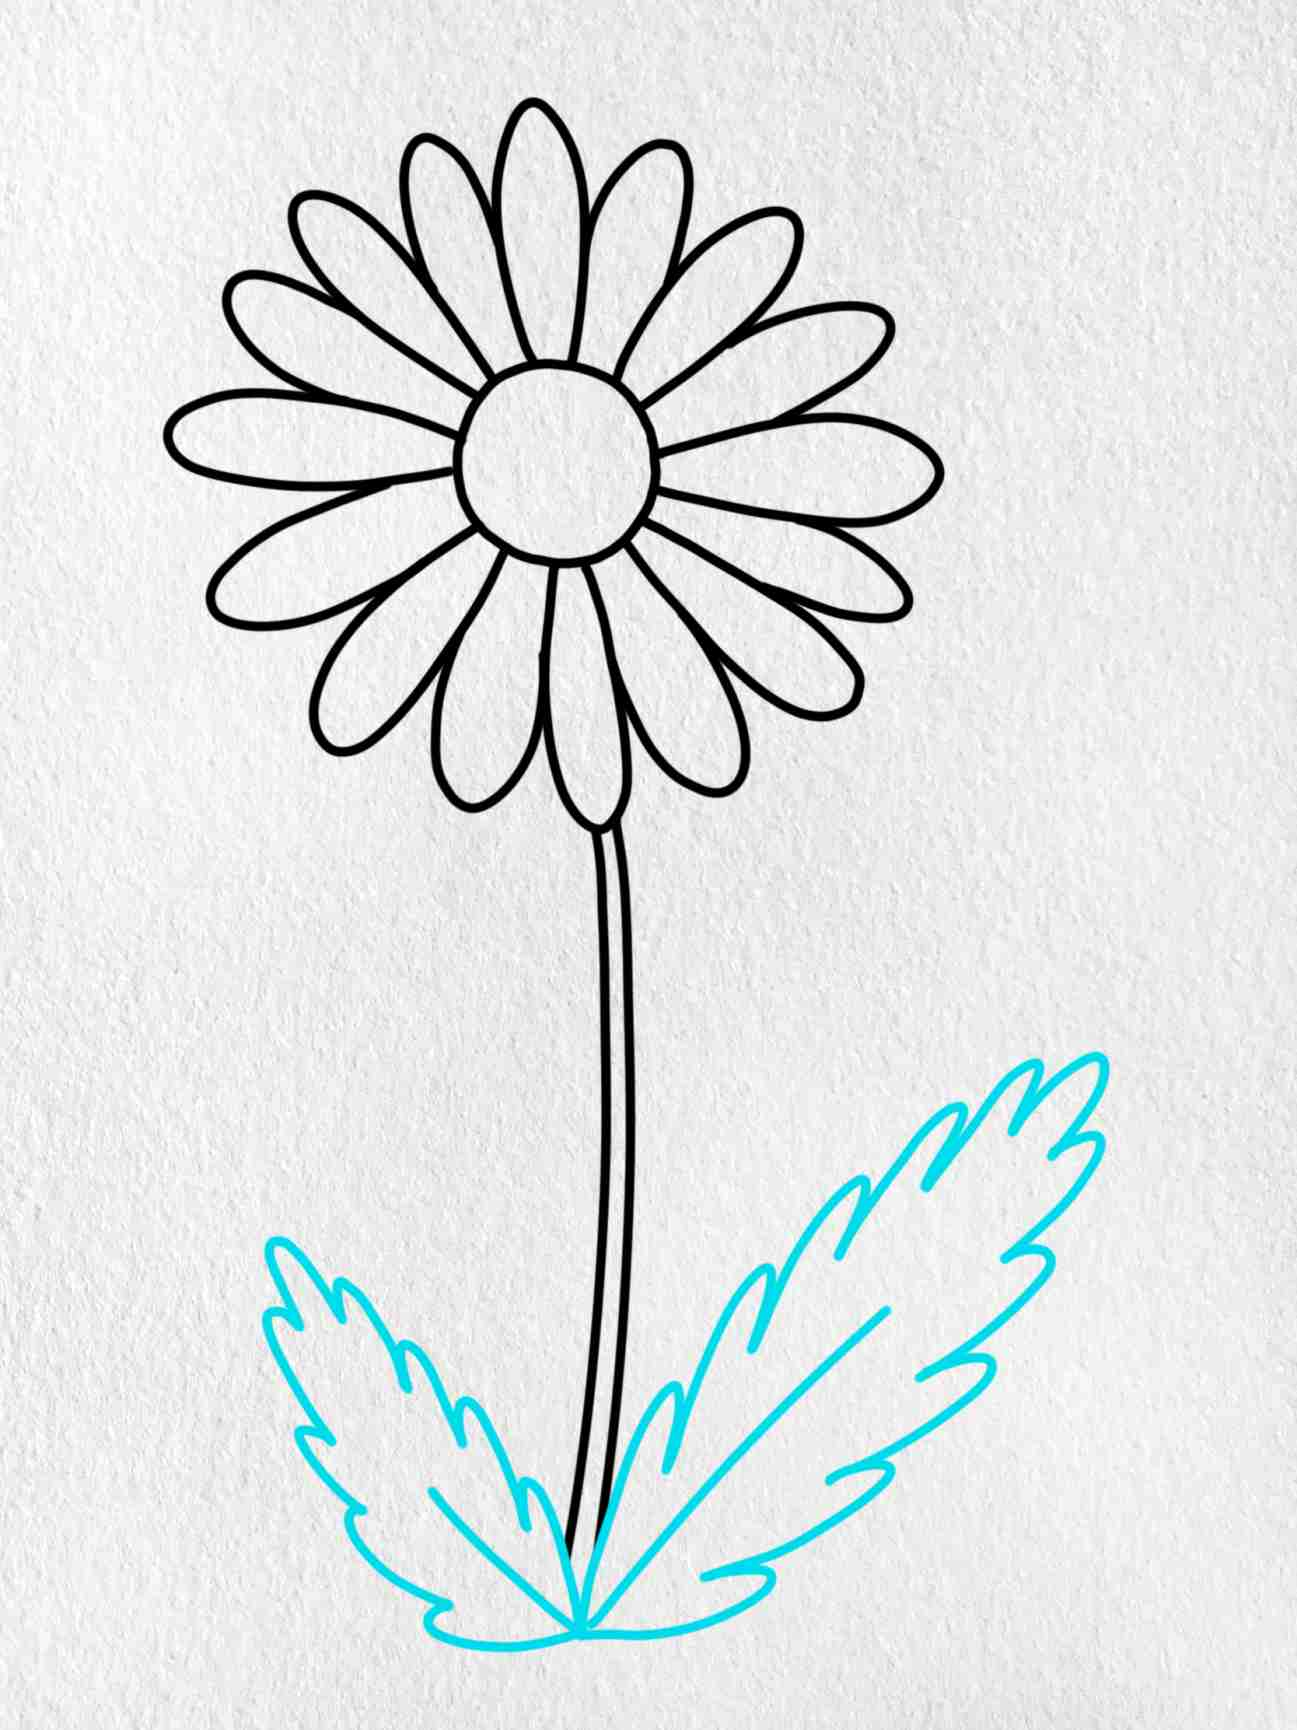 How To Draw A Daisy Flower: Step 5